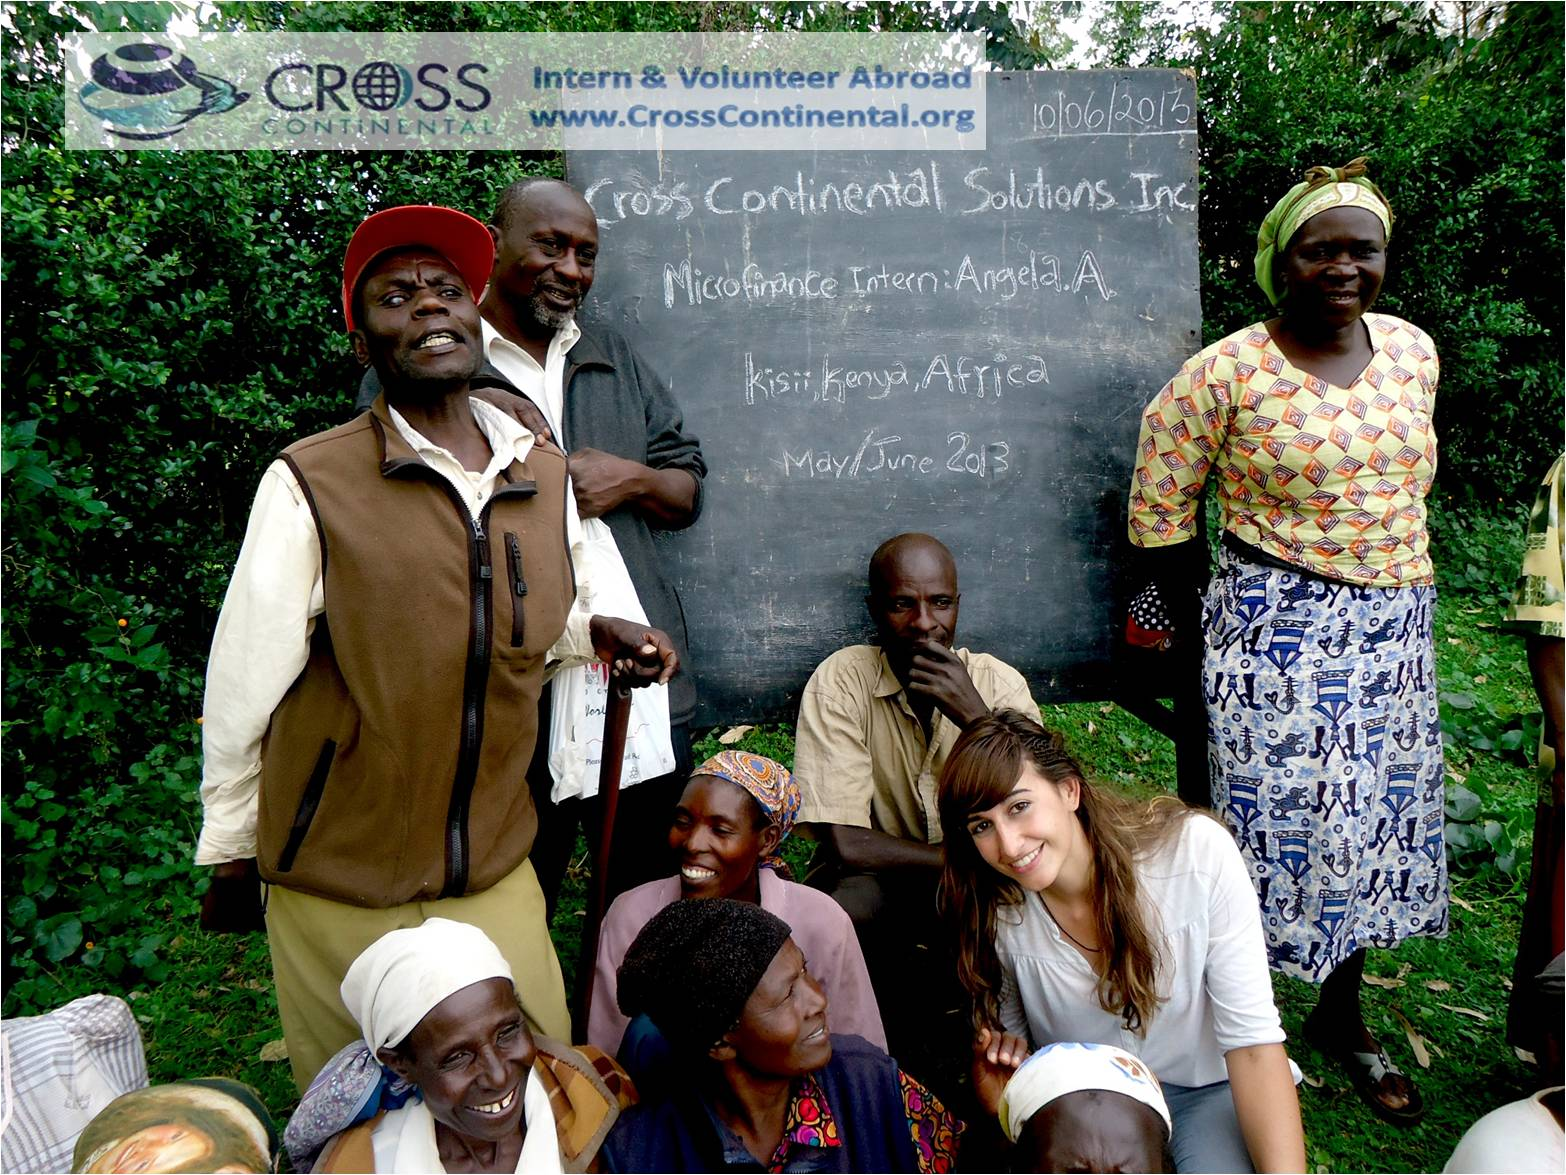 volunteer abroad, intern abroad, international internships, in Africa Kenya Microfinance